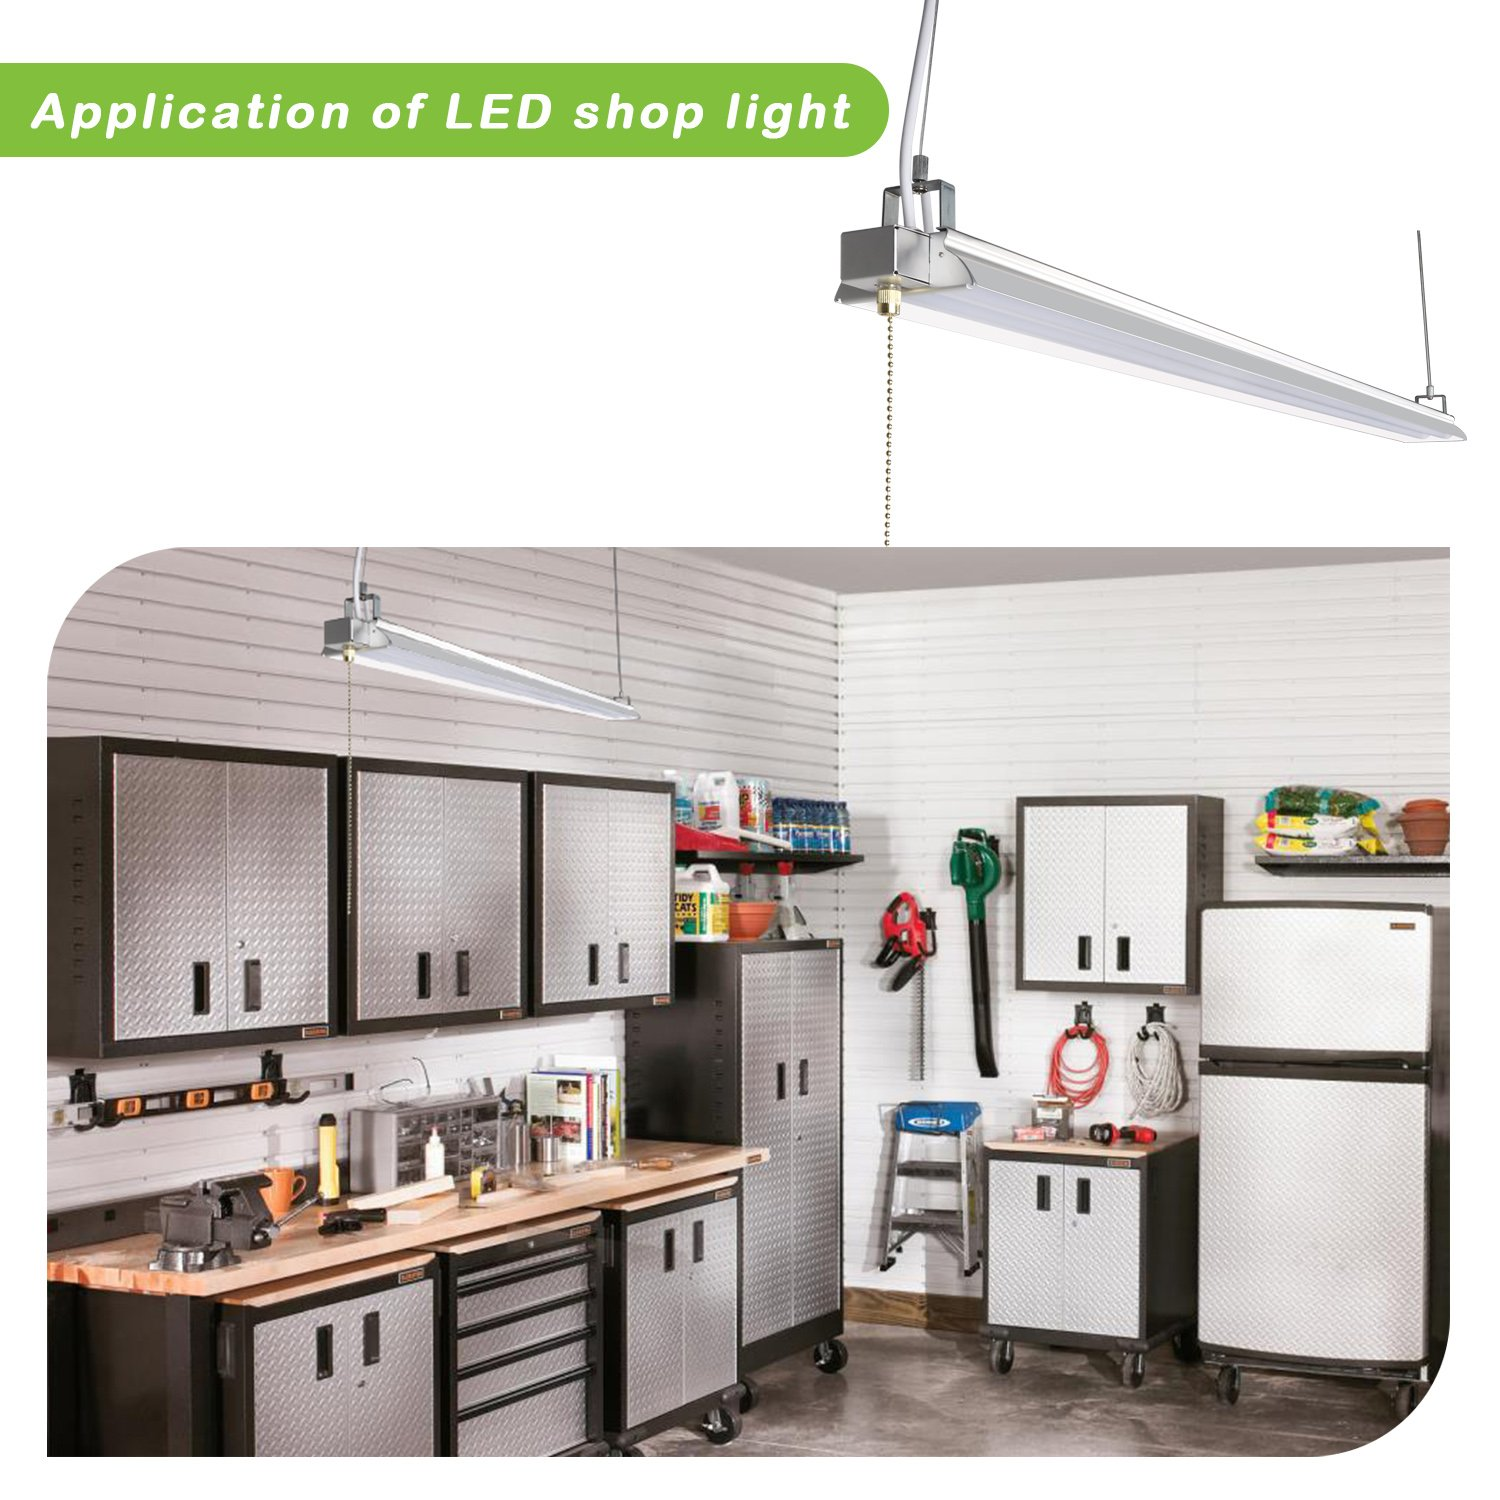 Hykolity 4FT 40W LED Shop Light with Pull Chain, 4200lm Hanging Garage Utility Light with Cord, Robust Aluminium Body, 5000K Workbench Light, 64w Fluorescent Fixture Equivalent, 5year Warranty-4 Pack by hykolity (Image #6)